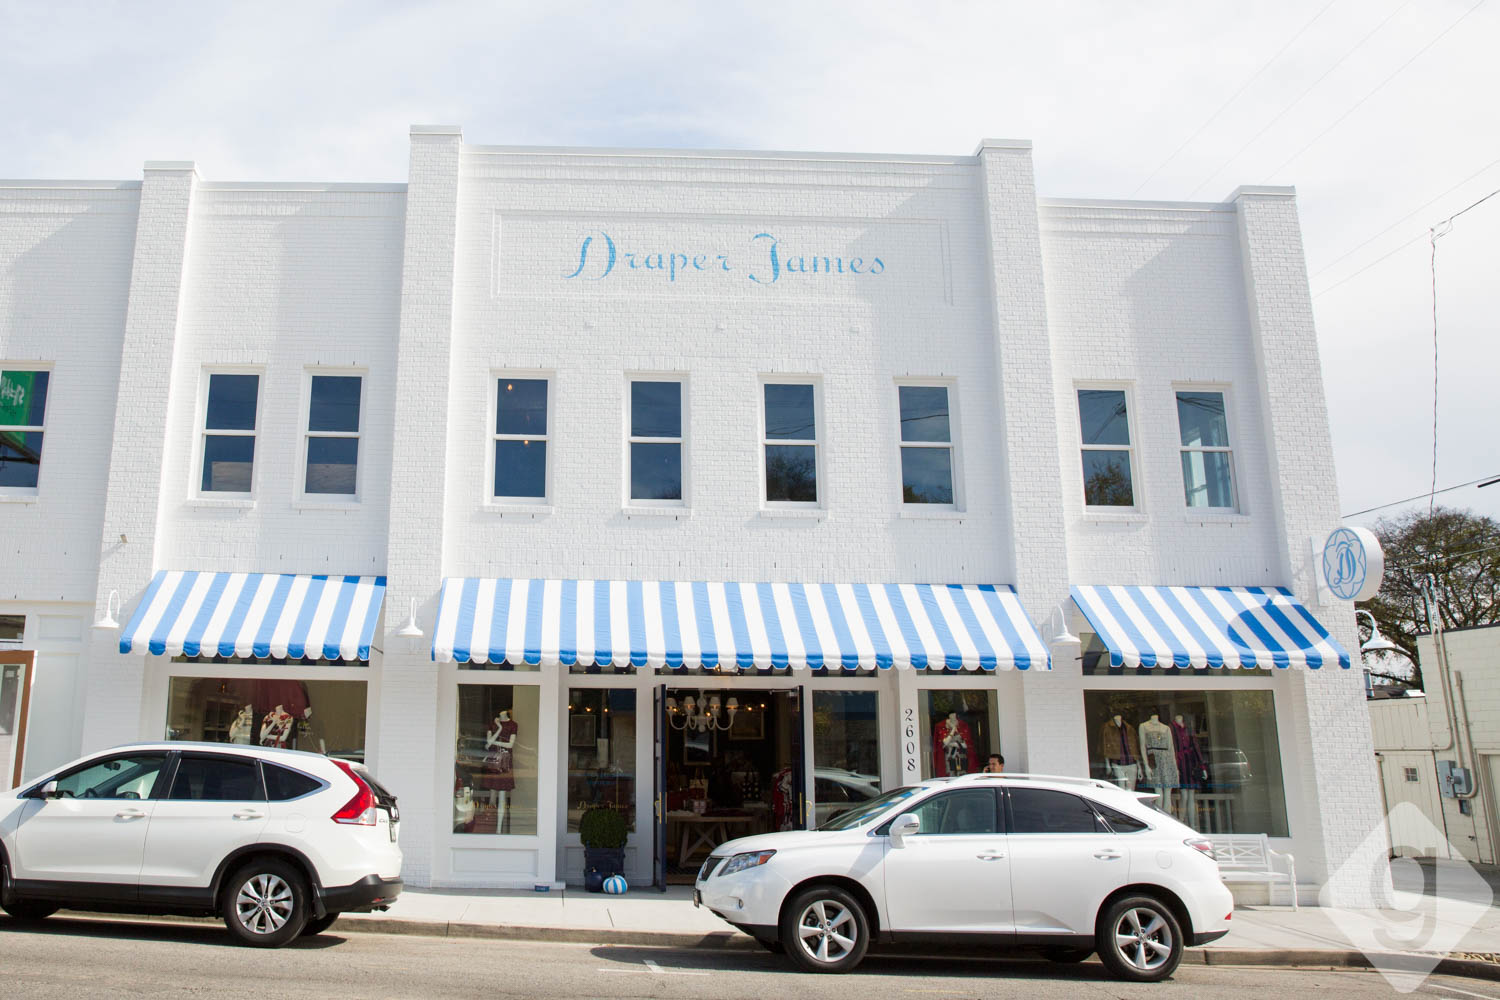 Draper James in 12 South  (Reese Witherspoon's Store!)